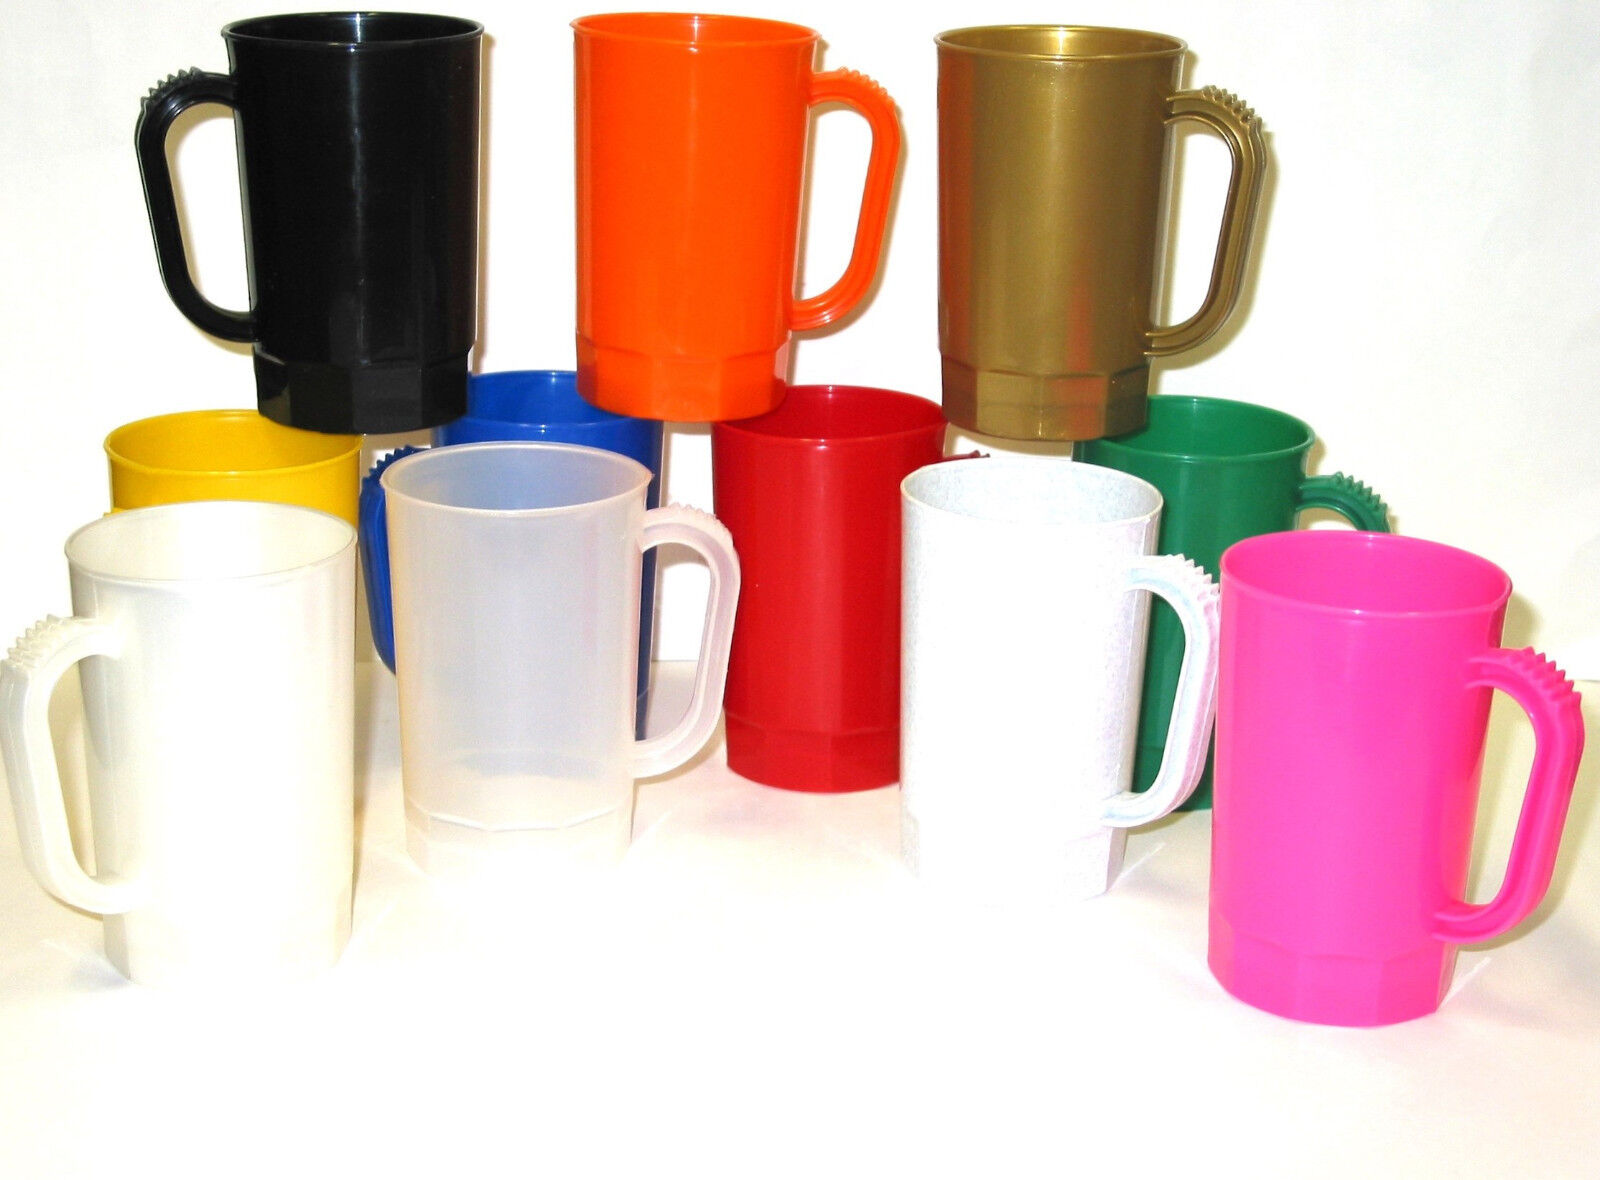 30 1 Pint Beer Mugs-Steins Mix of Farbes, Made in America Lead Free No BPA